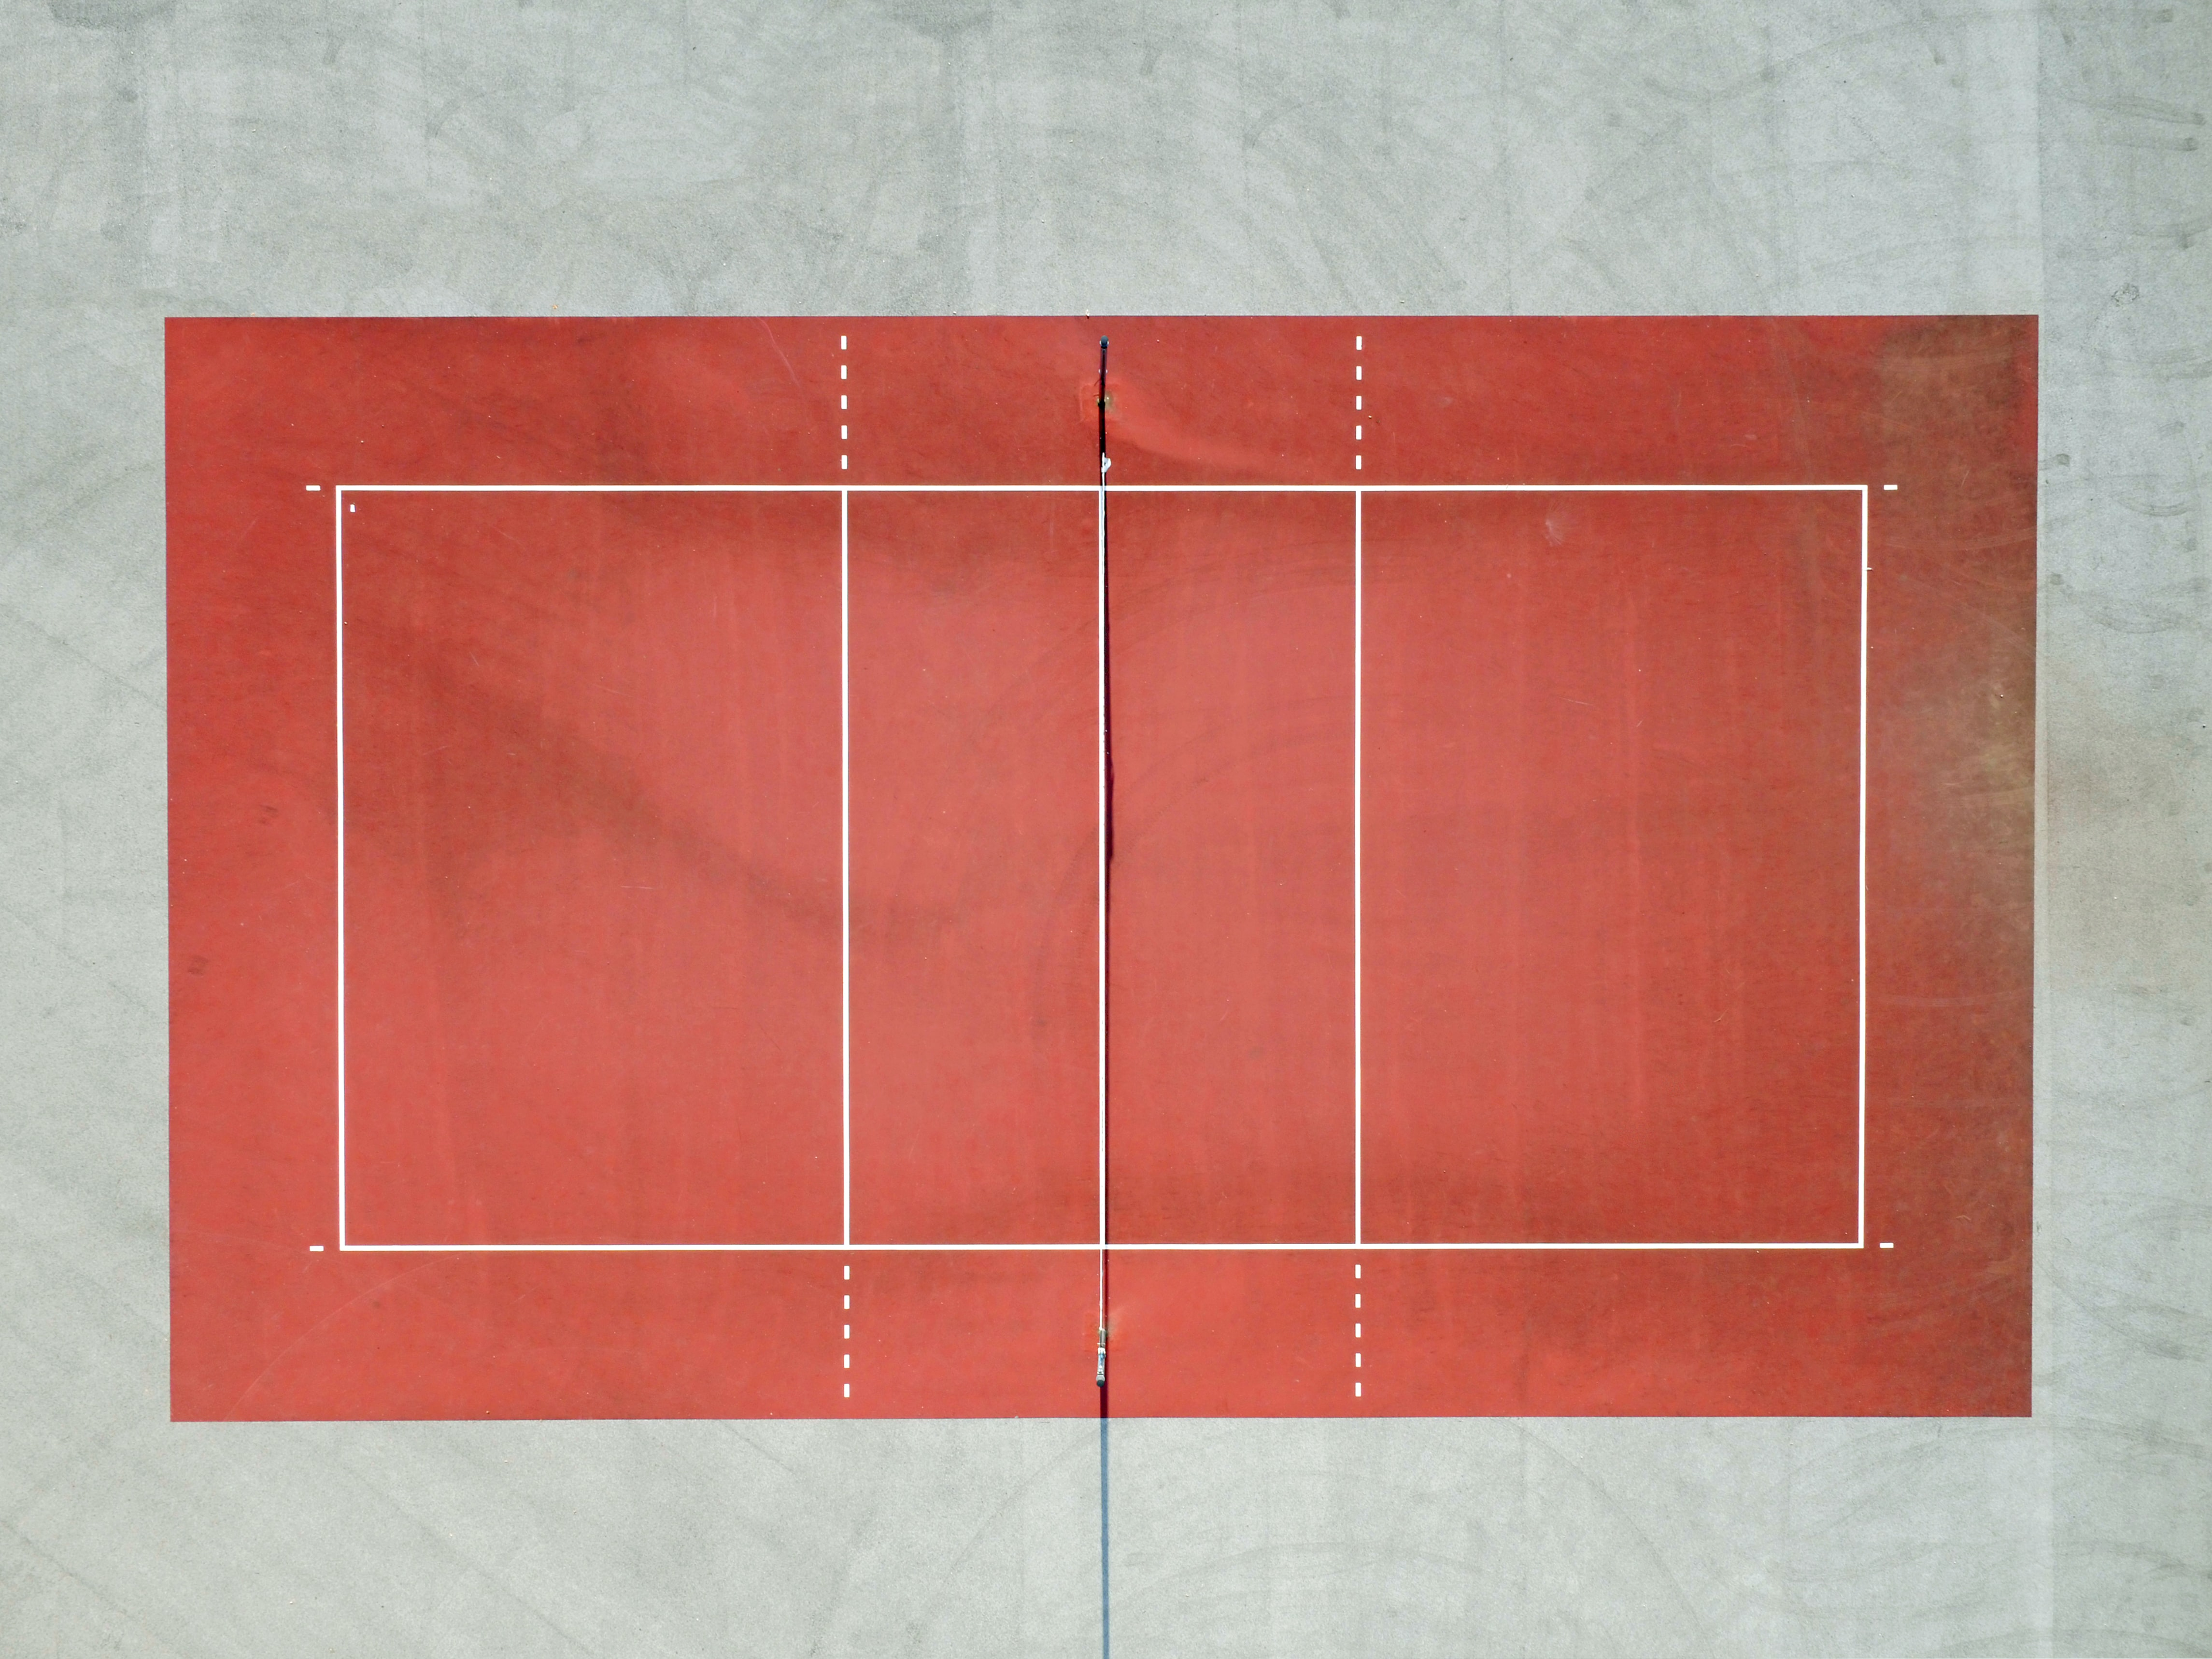 A drone shot of a red tennis court